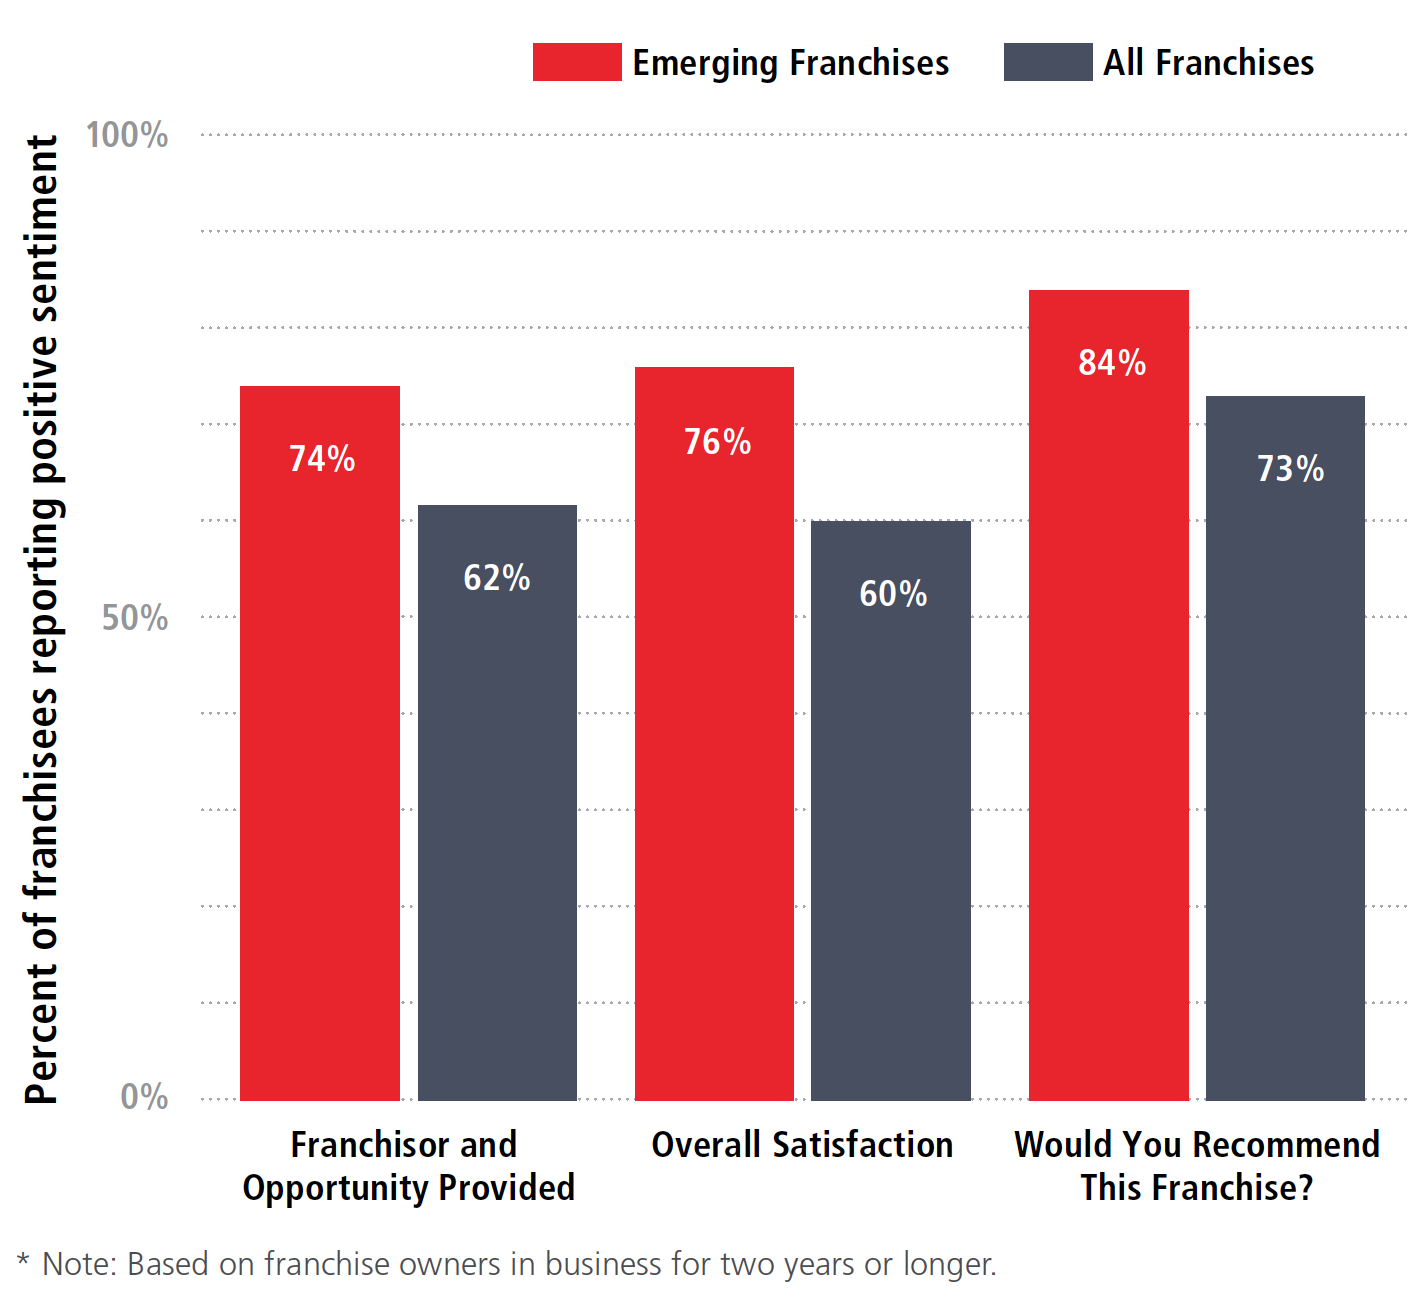 Emerging Brands: Franchisee Satisfaction